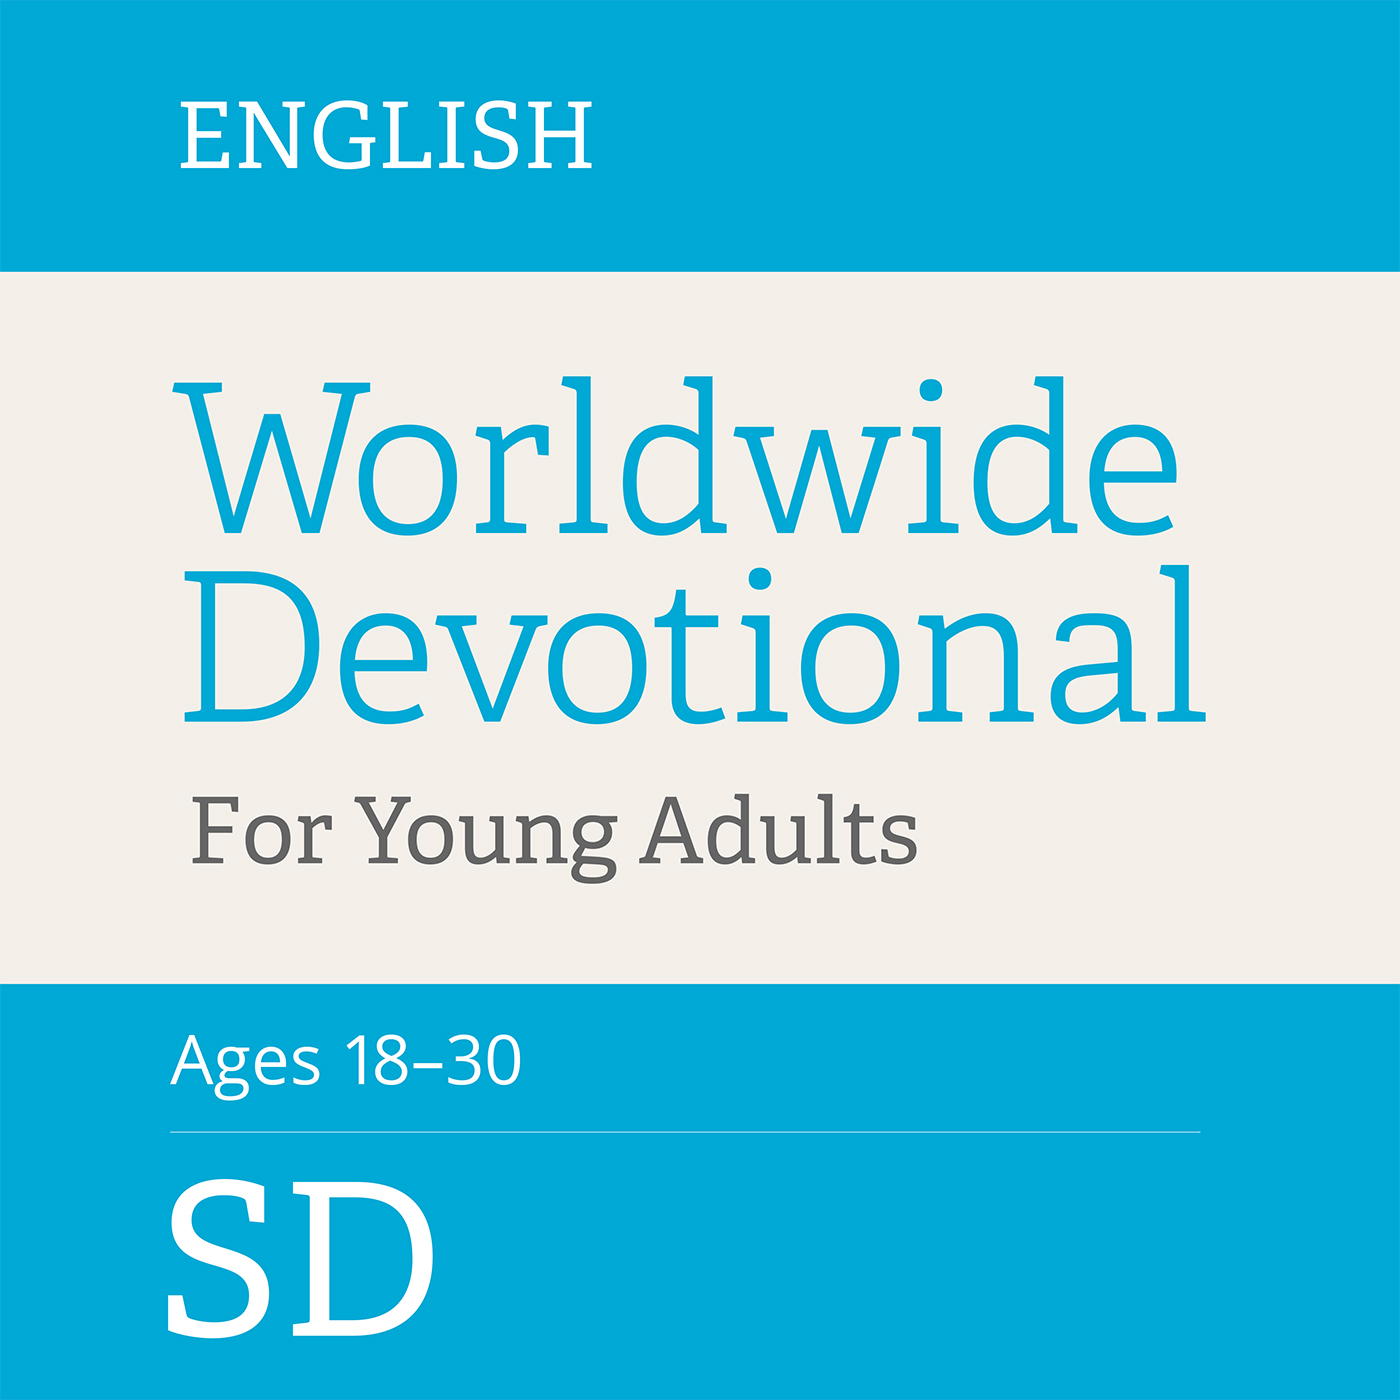 Worldwide Devotional For Young Adults | SD | ENGLISH